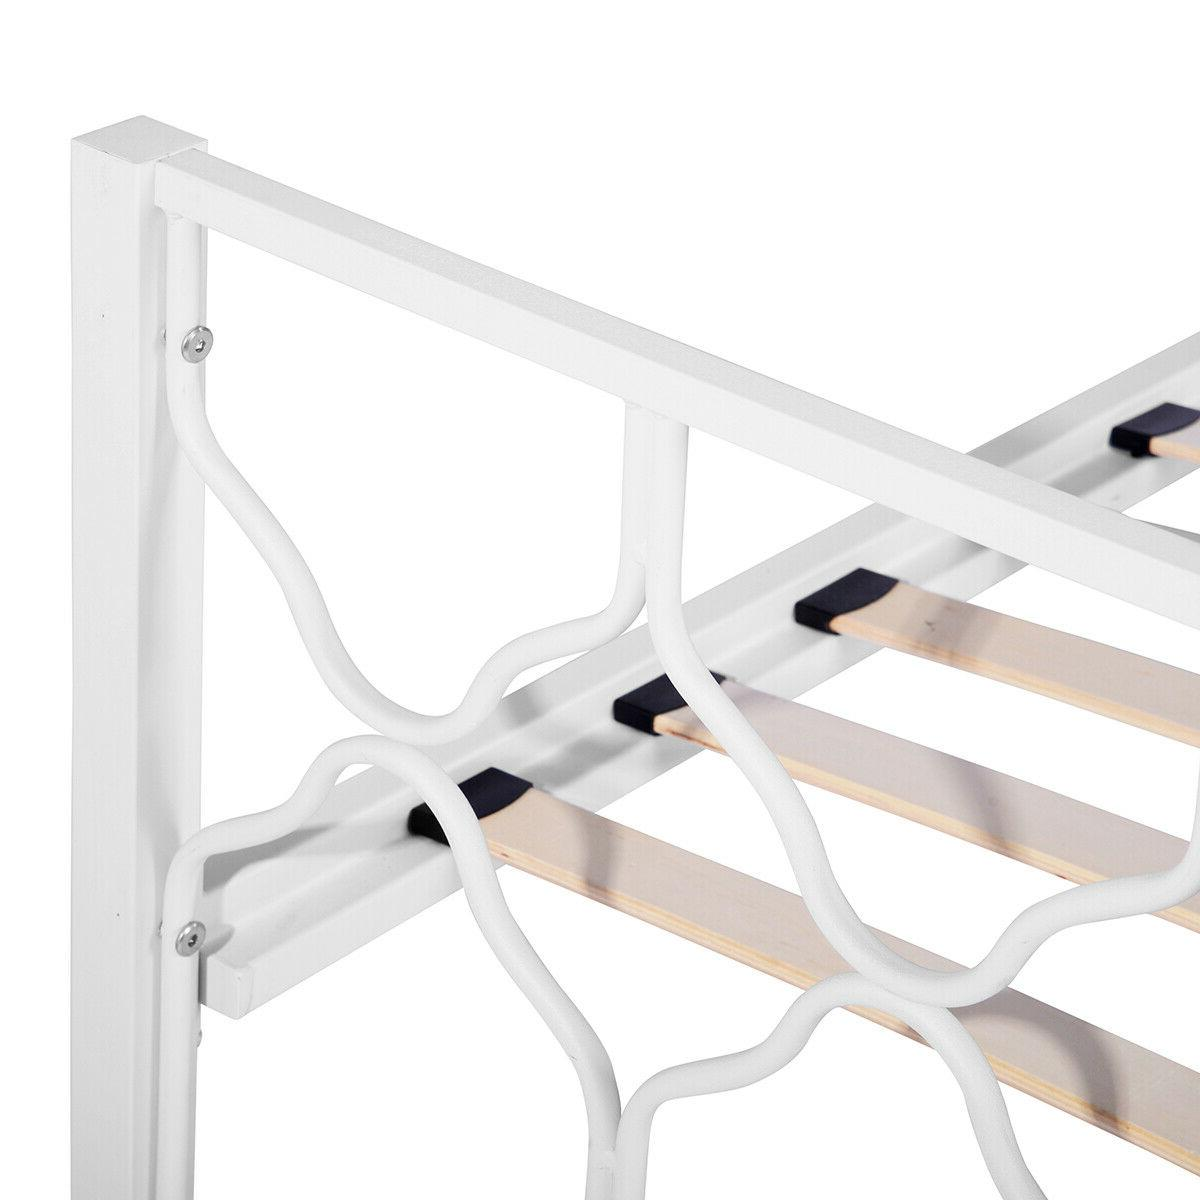 Twin Frame Metal Wood Slat Supported Bed Structure